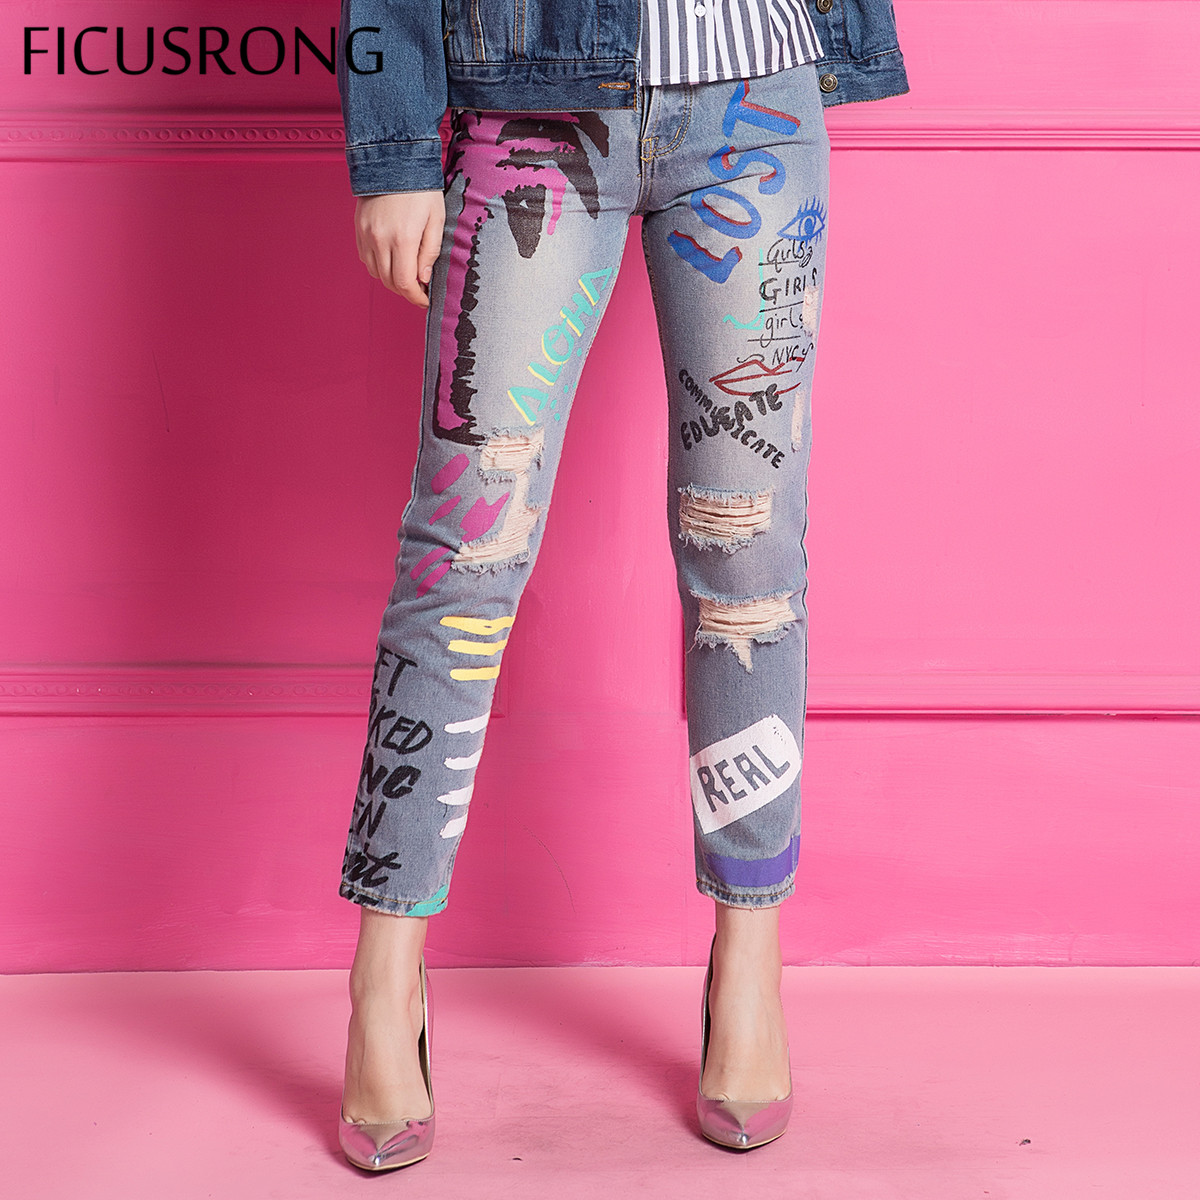 FICUSRONG 2018 New Graffiti Hole ripped   jeans   women harem pant loose ankle-length pants Boyfriends For woman Ladies skinny   jeans